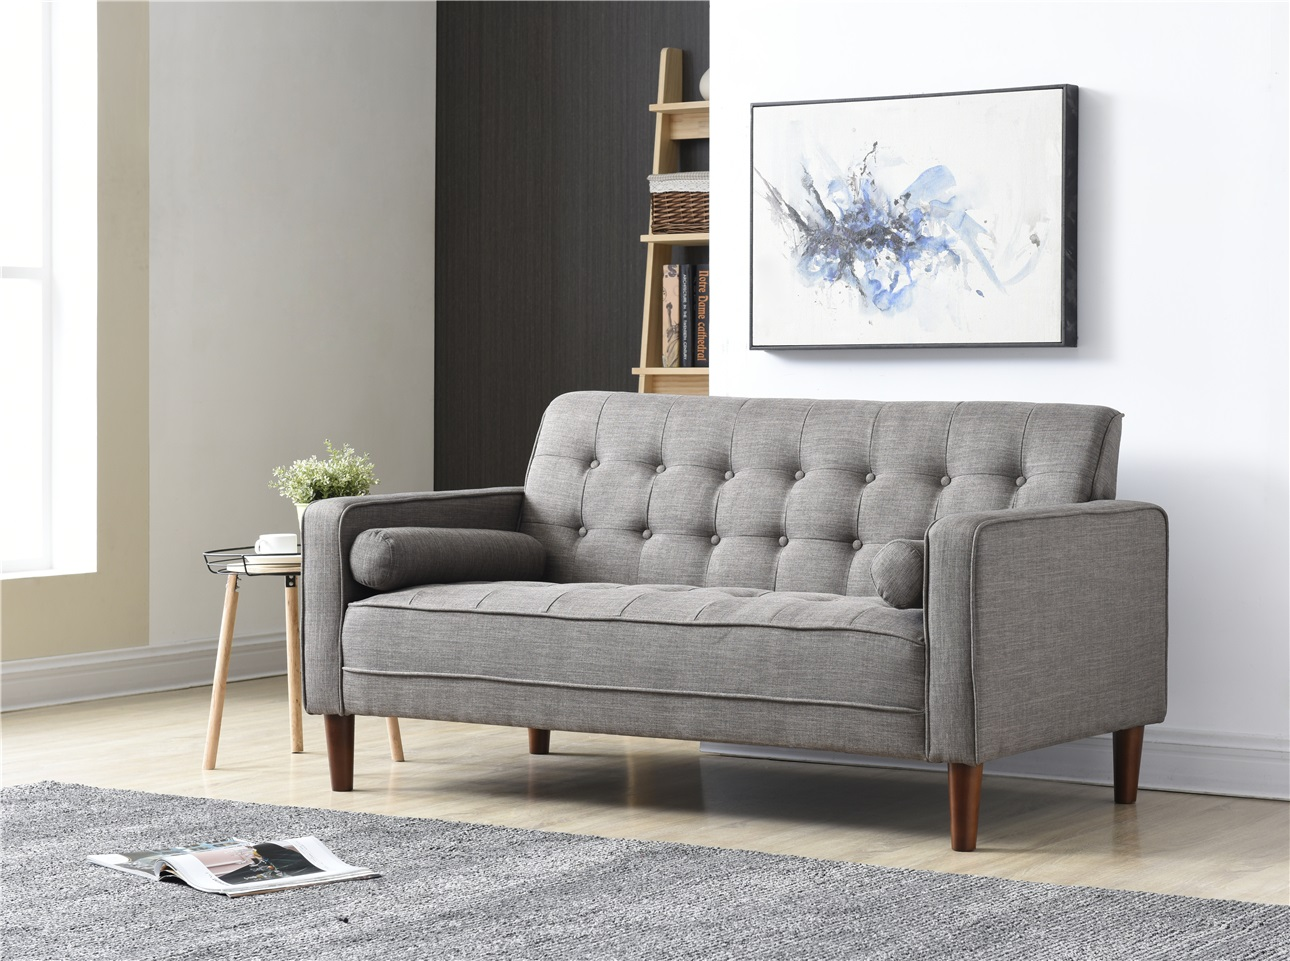 Nathaniel Home Nolan Small Space Sofa, Multiple Colors Image 2 Of 5